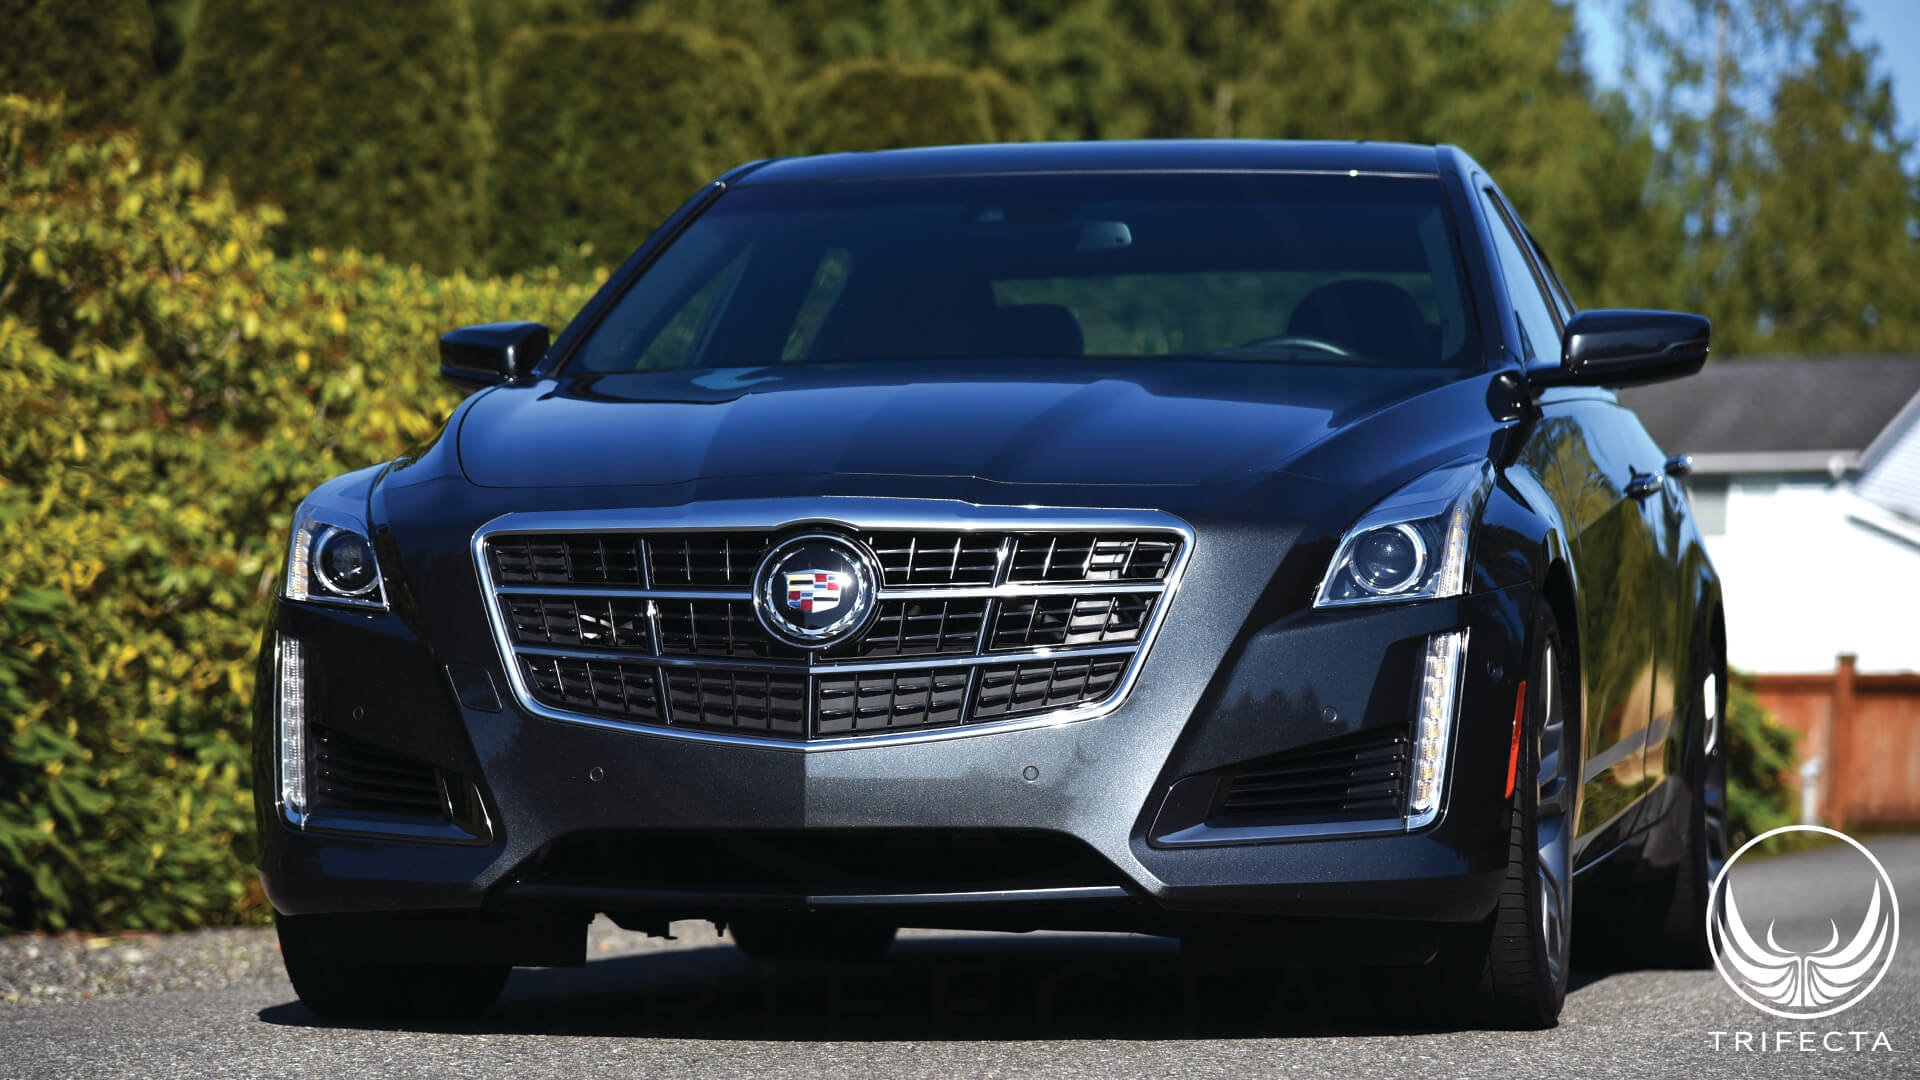 Product Review: 2014+ Cadillac CTS VSport - 3.6L Twin Turbo